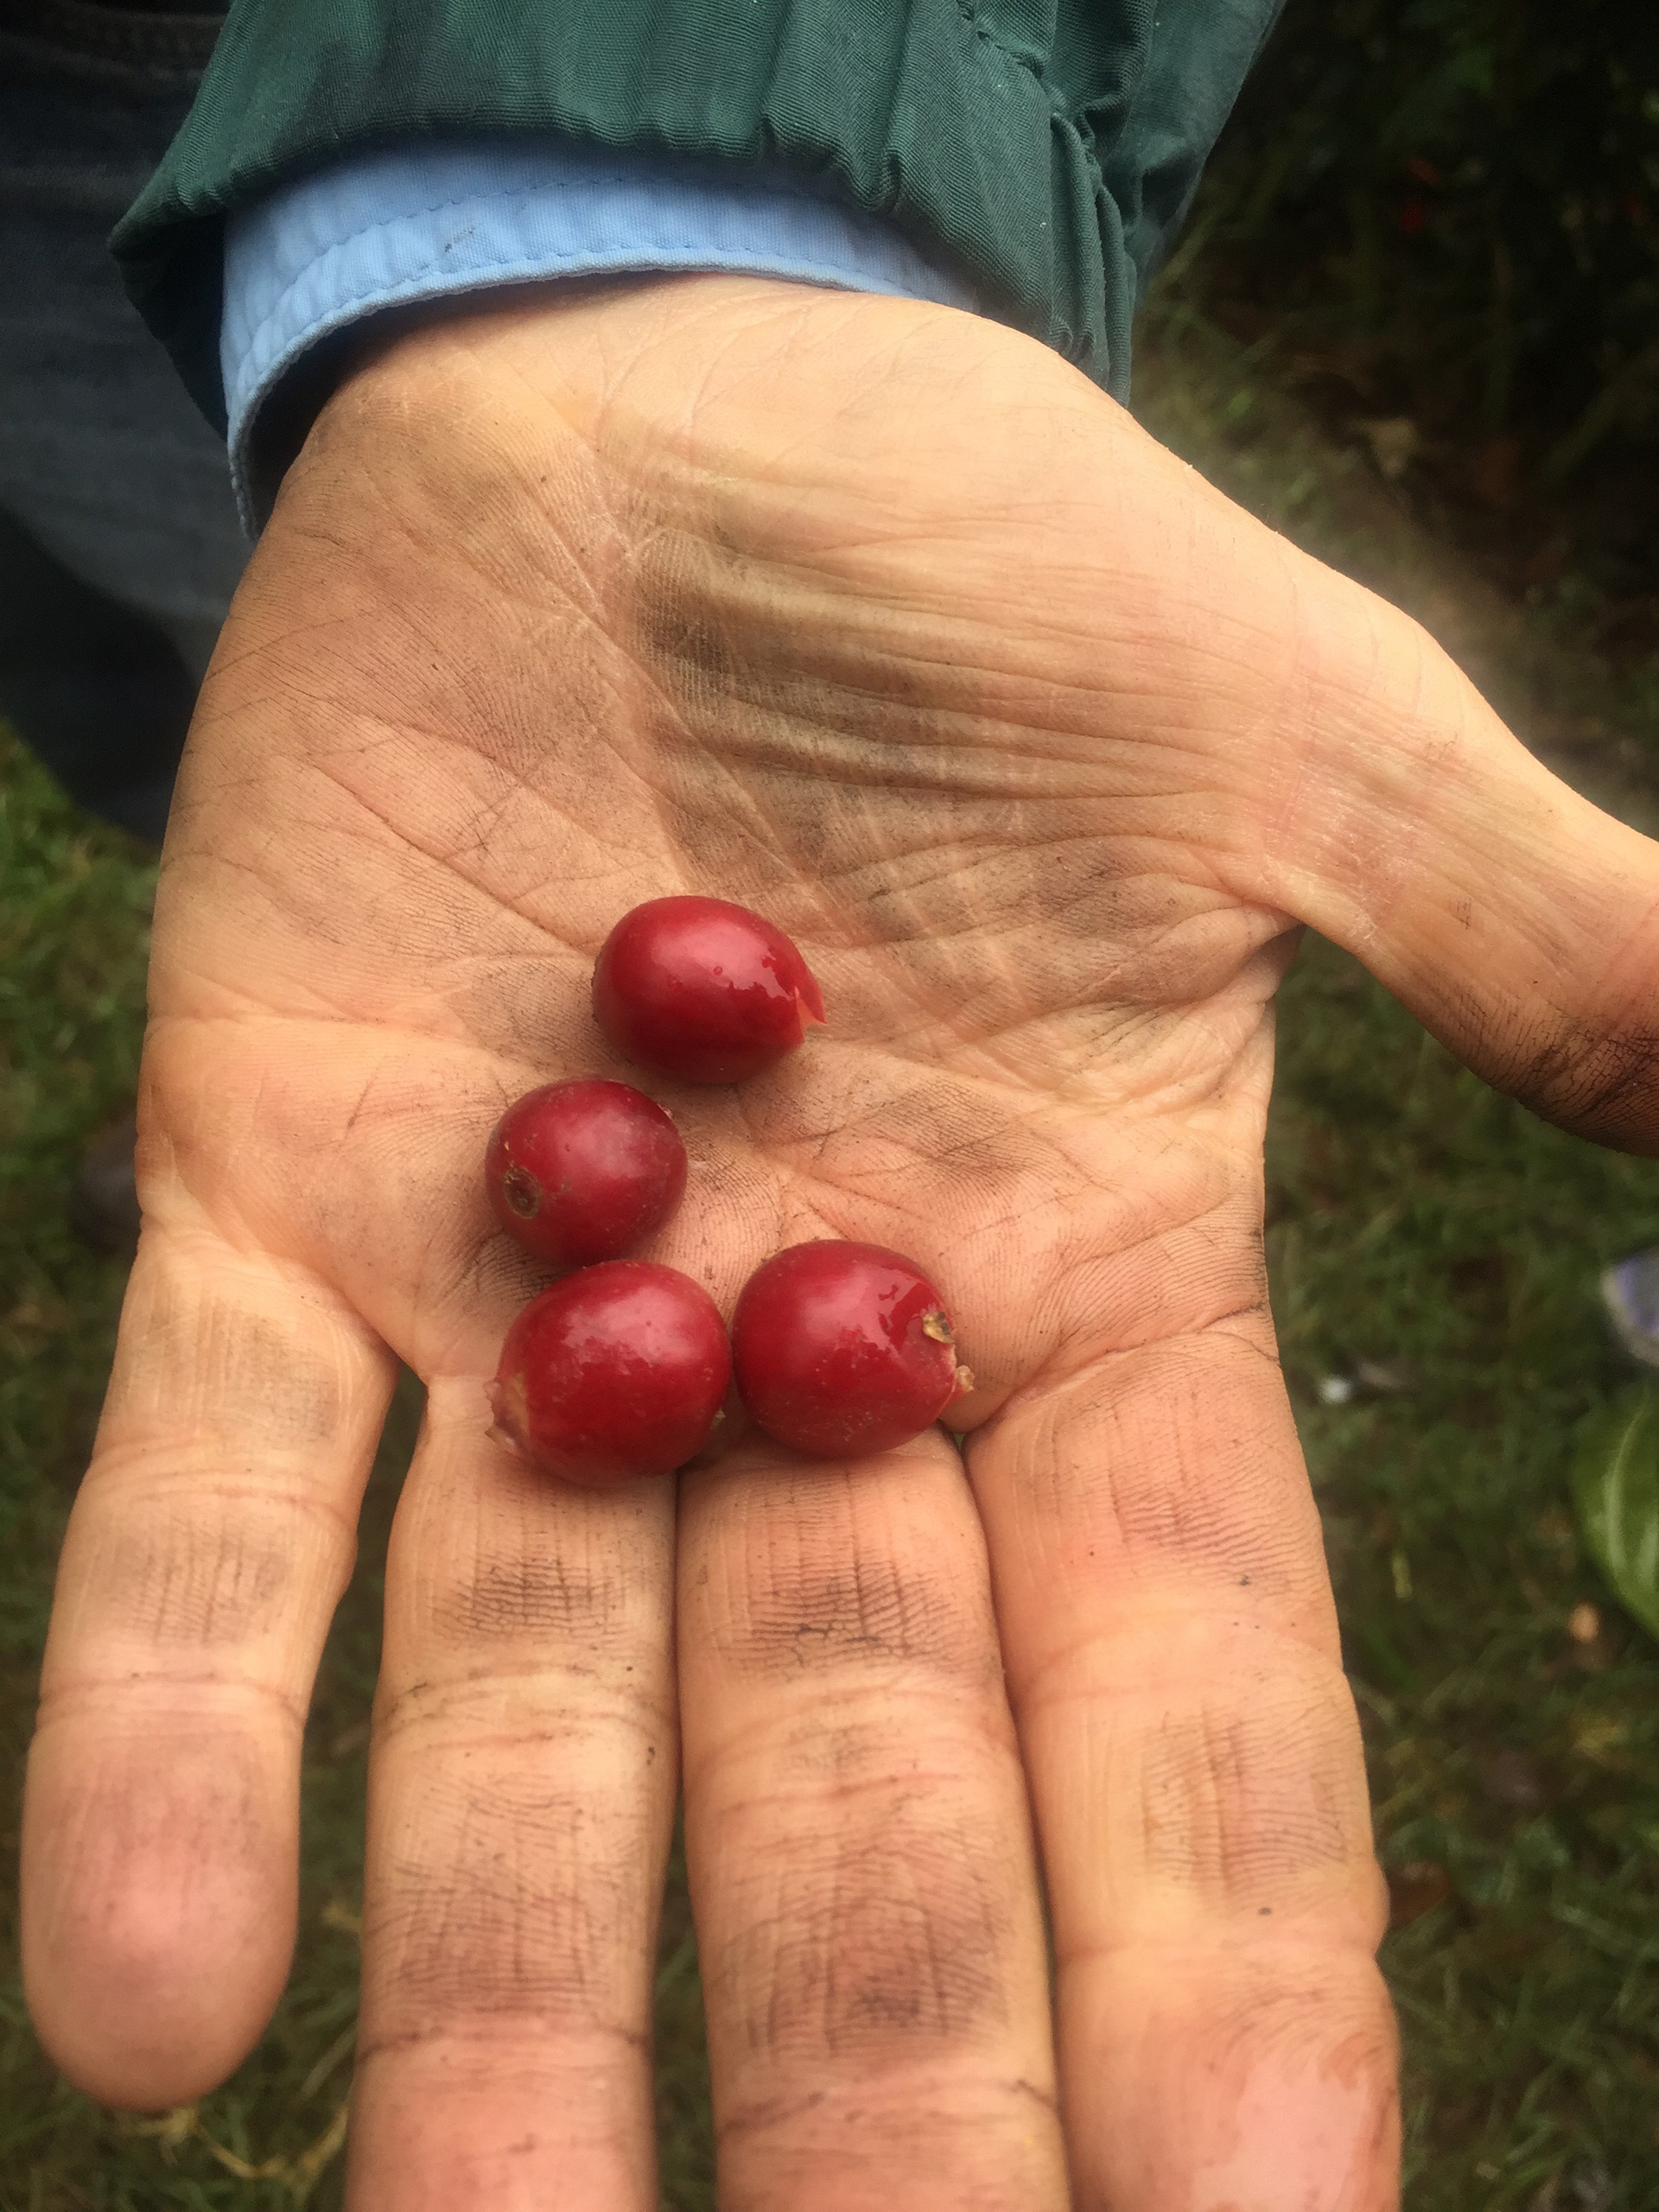 Just-picked coffee cherries